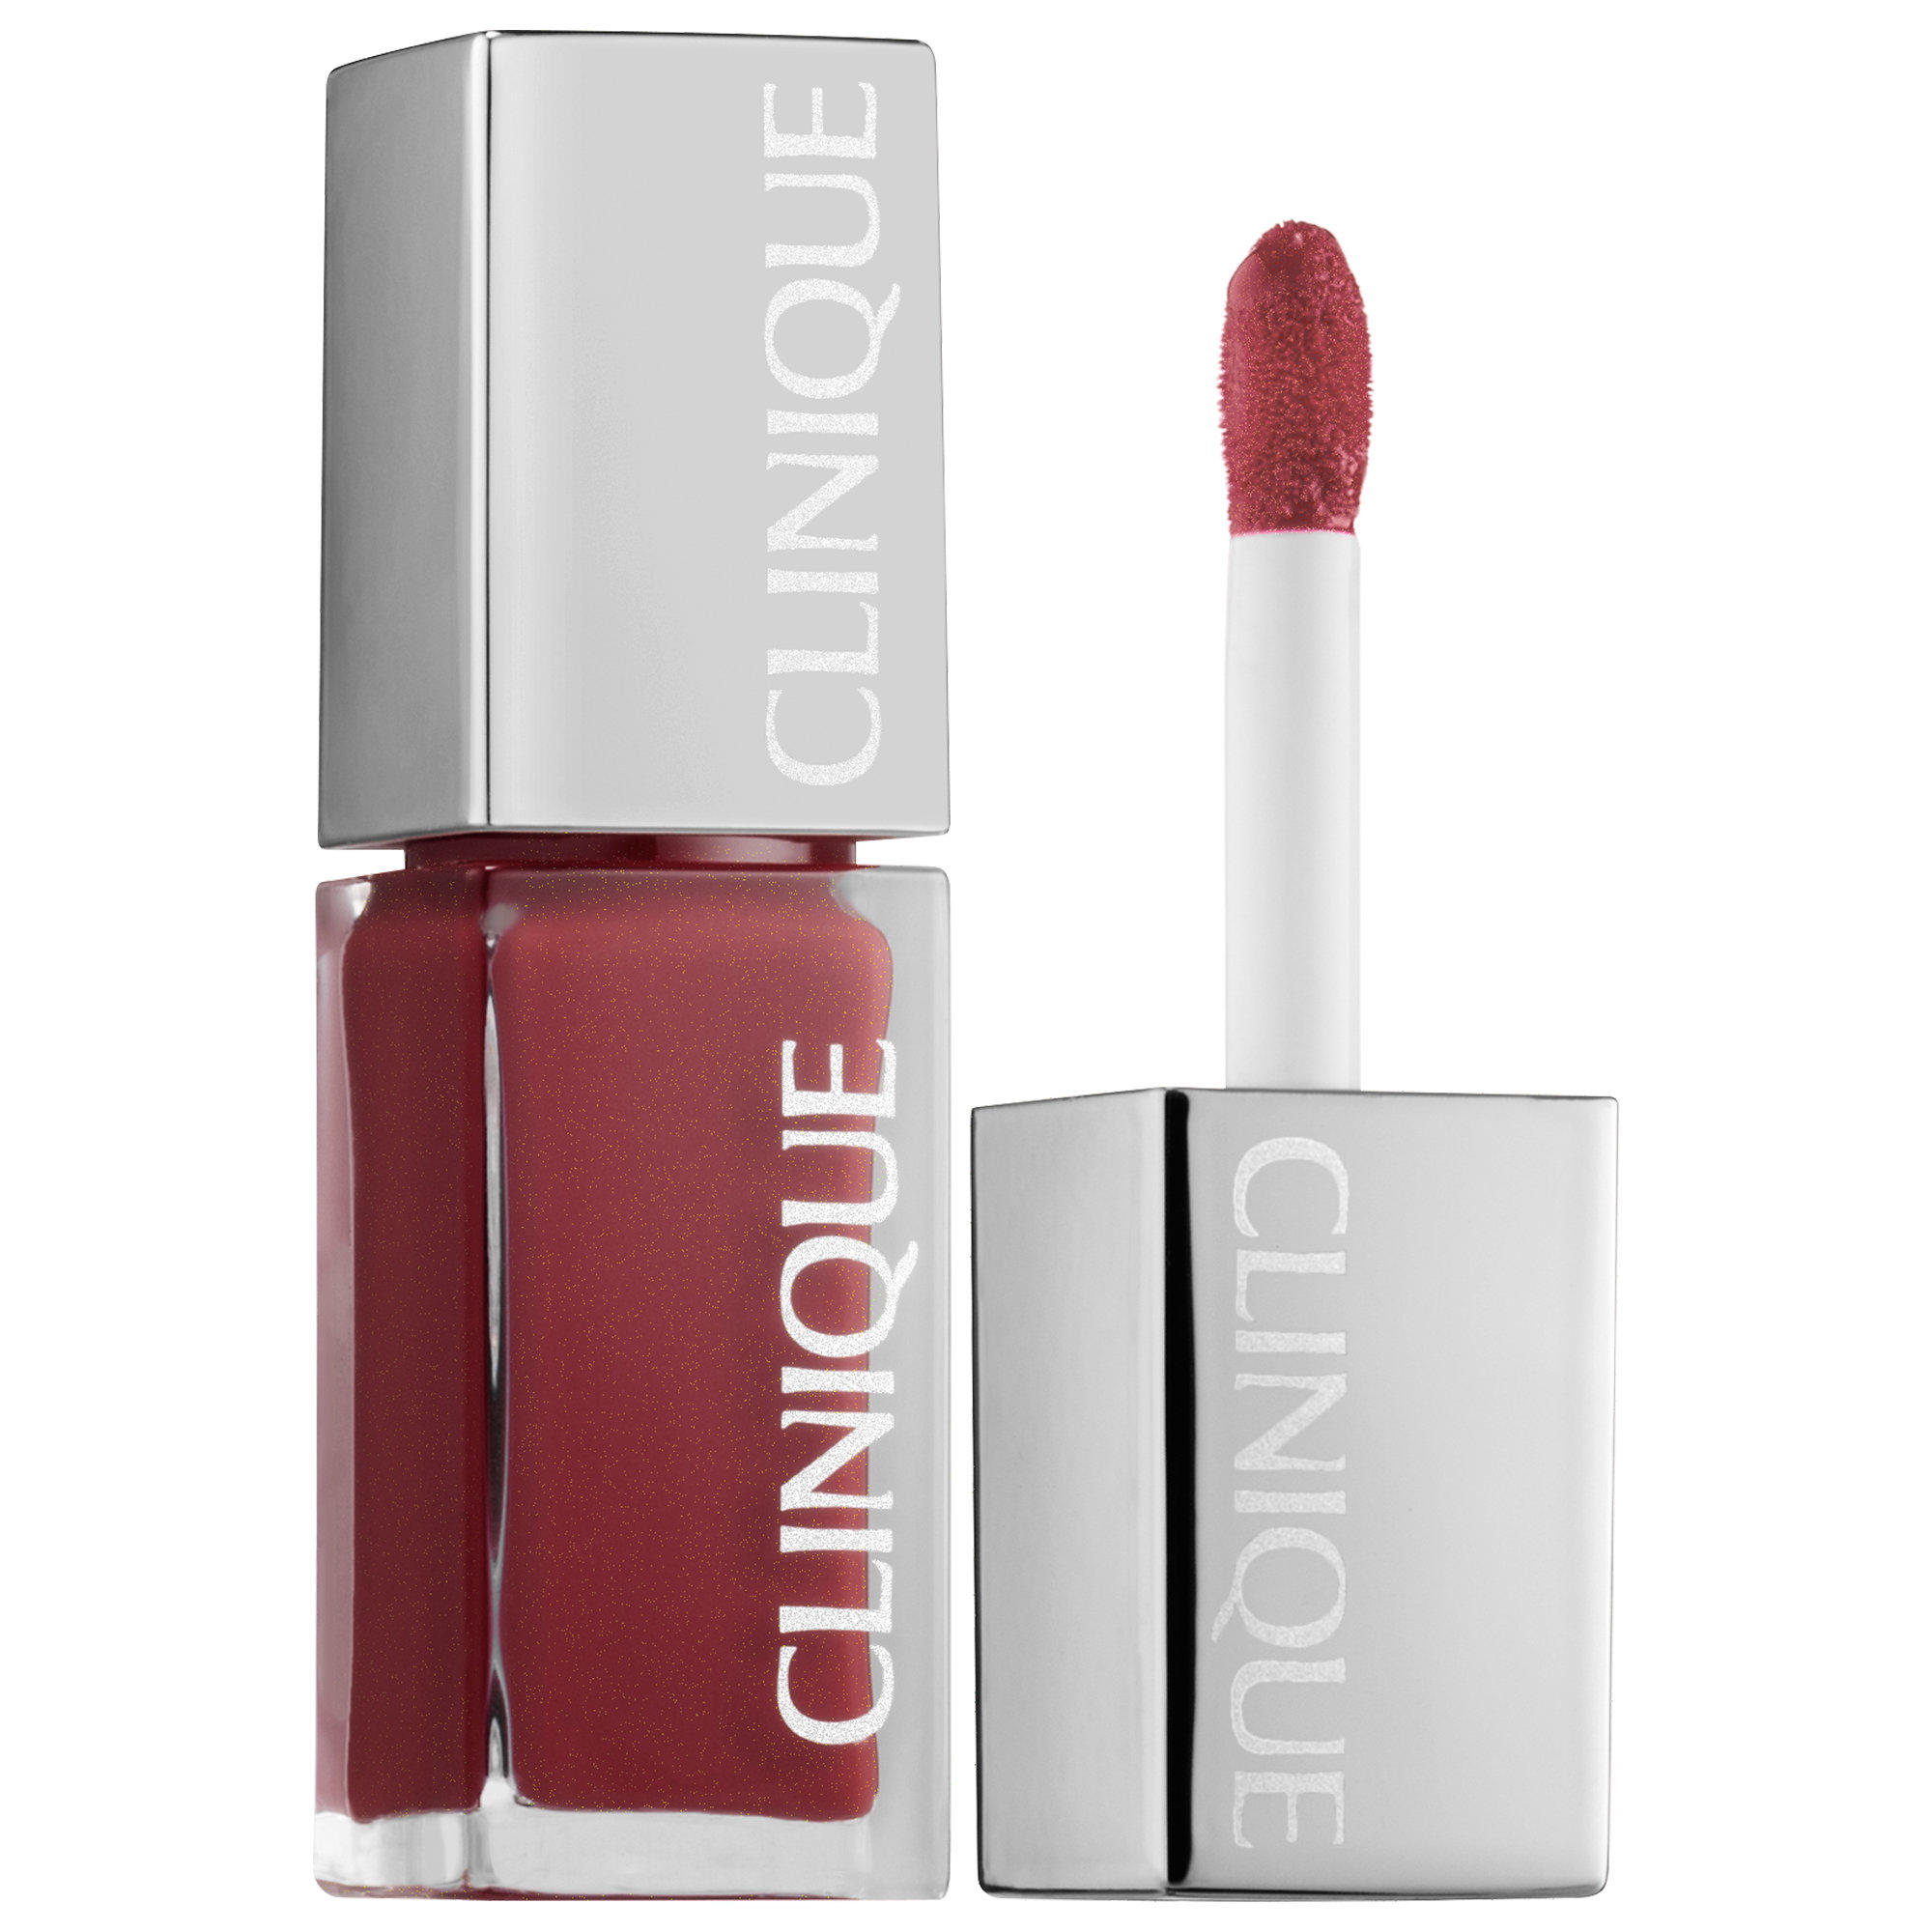 New Release Clinique launched new Pop Laquer Lip Colour + Primer